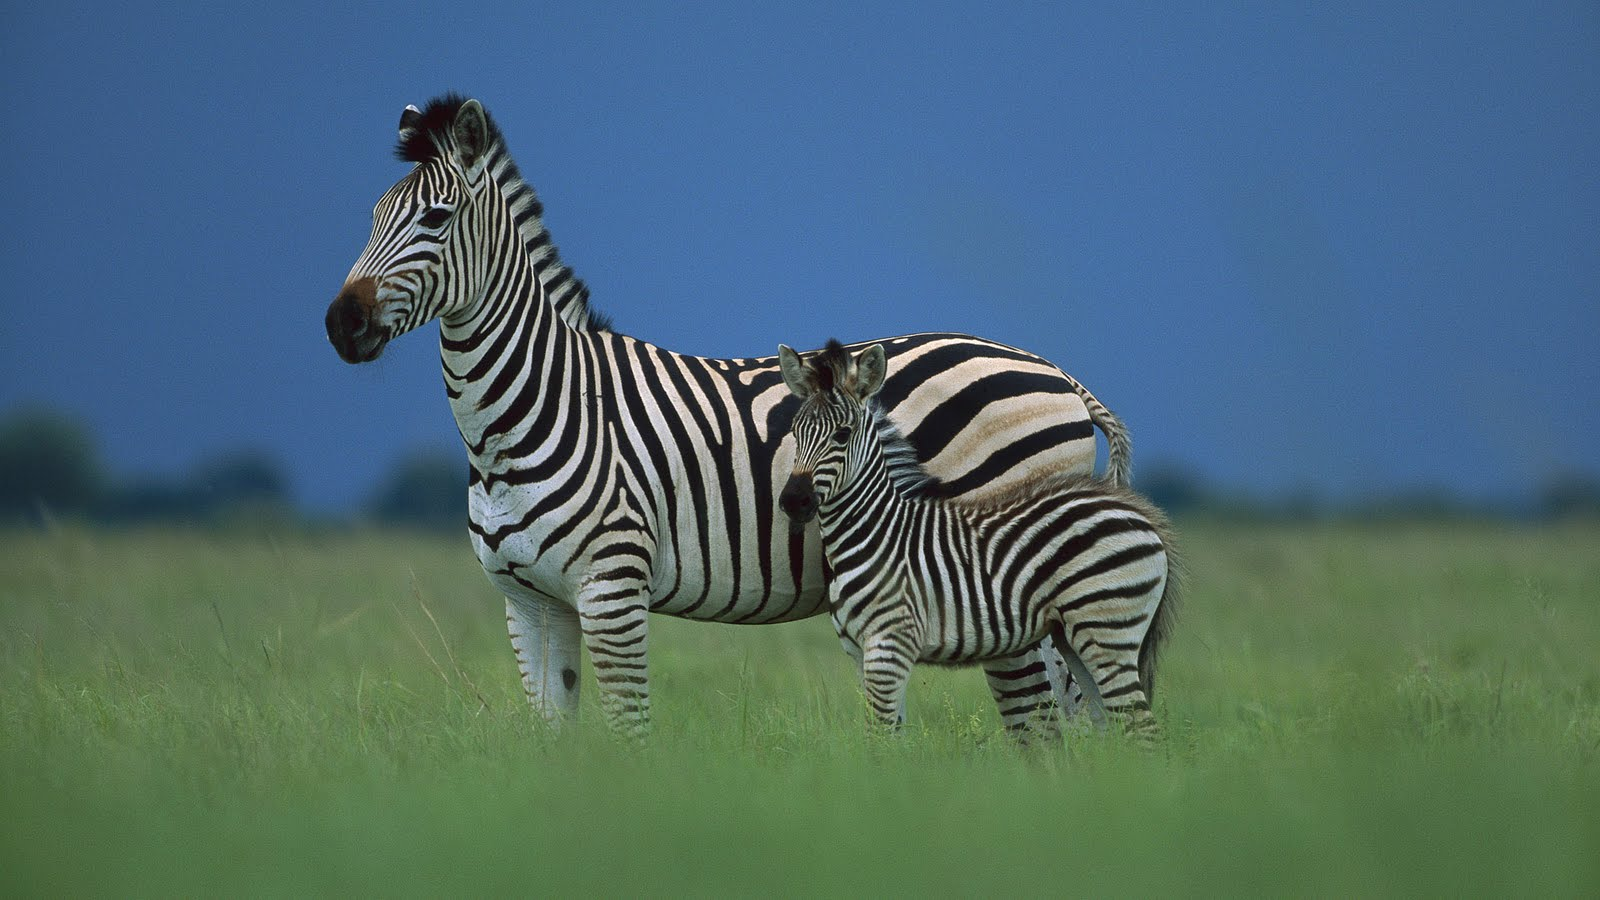 Zebra Wallpapers|Zebra Images|Zebra Photos|Zebra Pictures ...